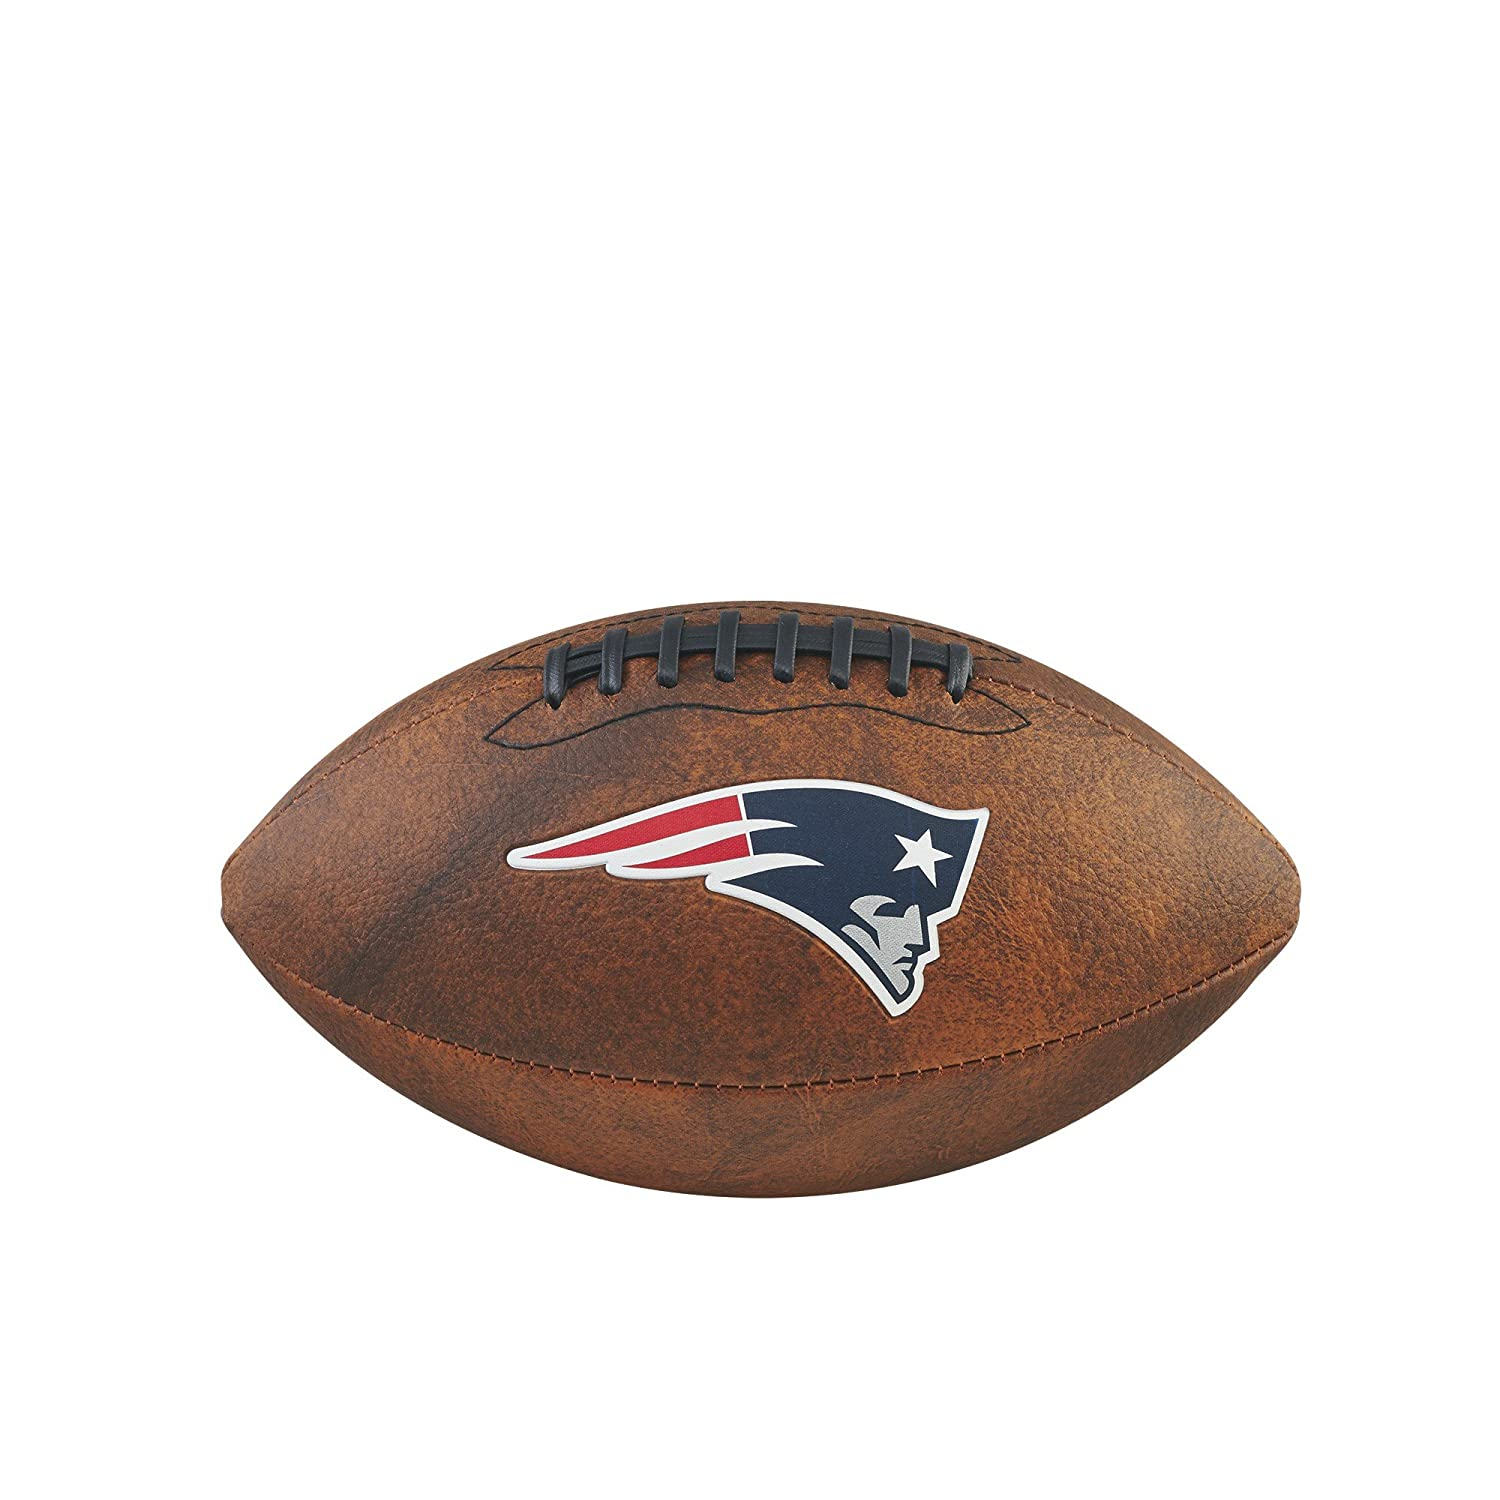 Game Master NFL New England Patriots Junior Wilson Throwback Football, 11-Inch, Brown Gulf Coast Sales WTF1539XBNE